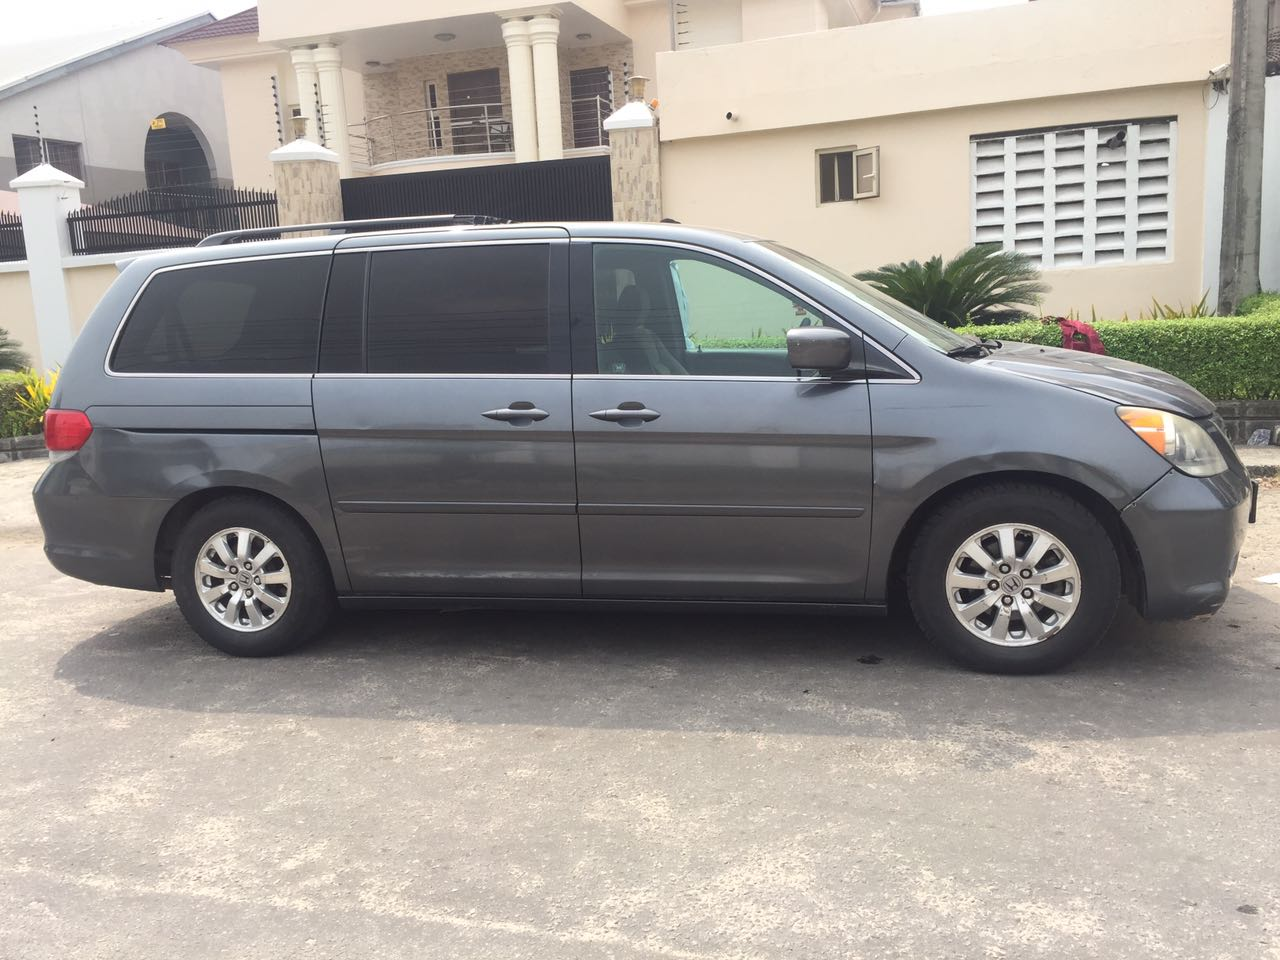 registered 2010 honda odyssey for sale autos nigeria. Black Bedroom Furniture Sets. Home Design Ideas